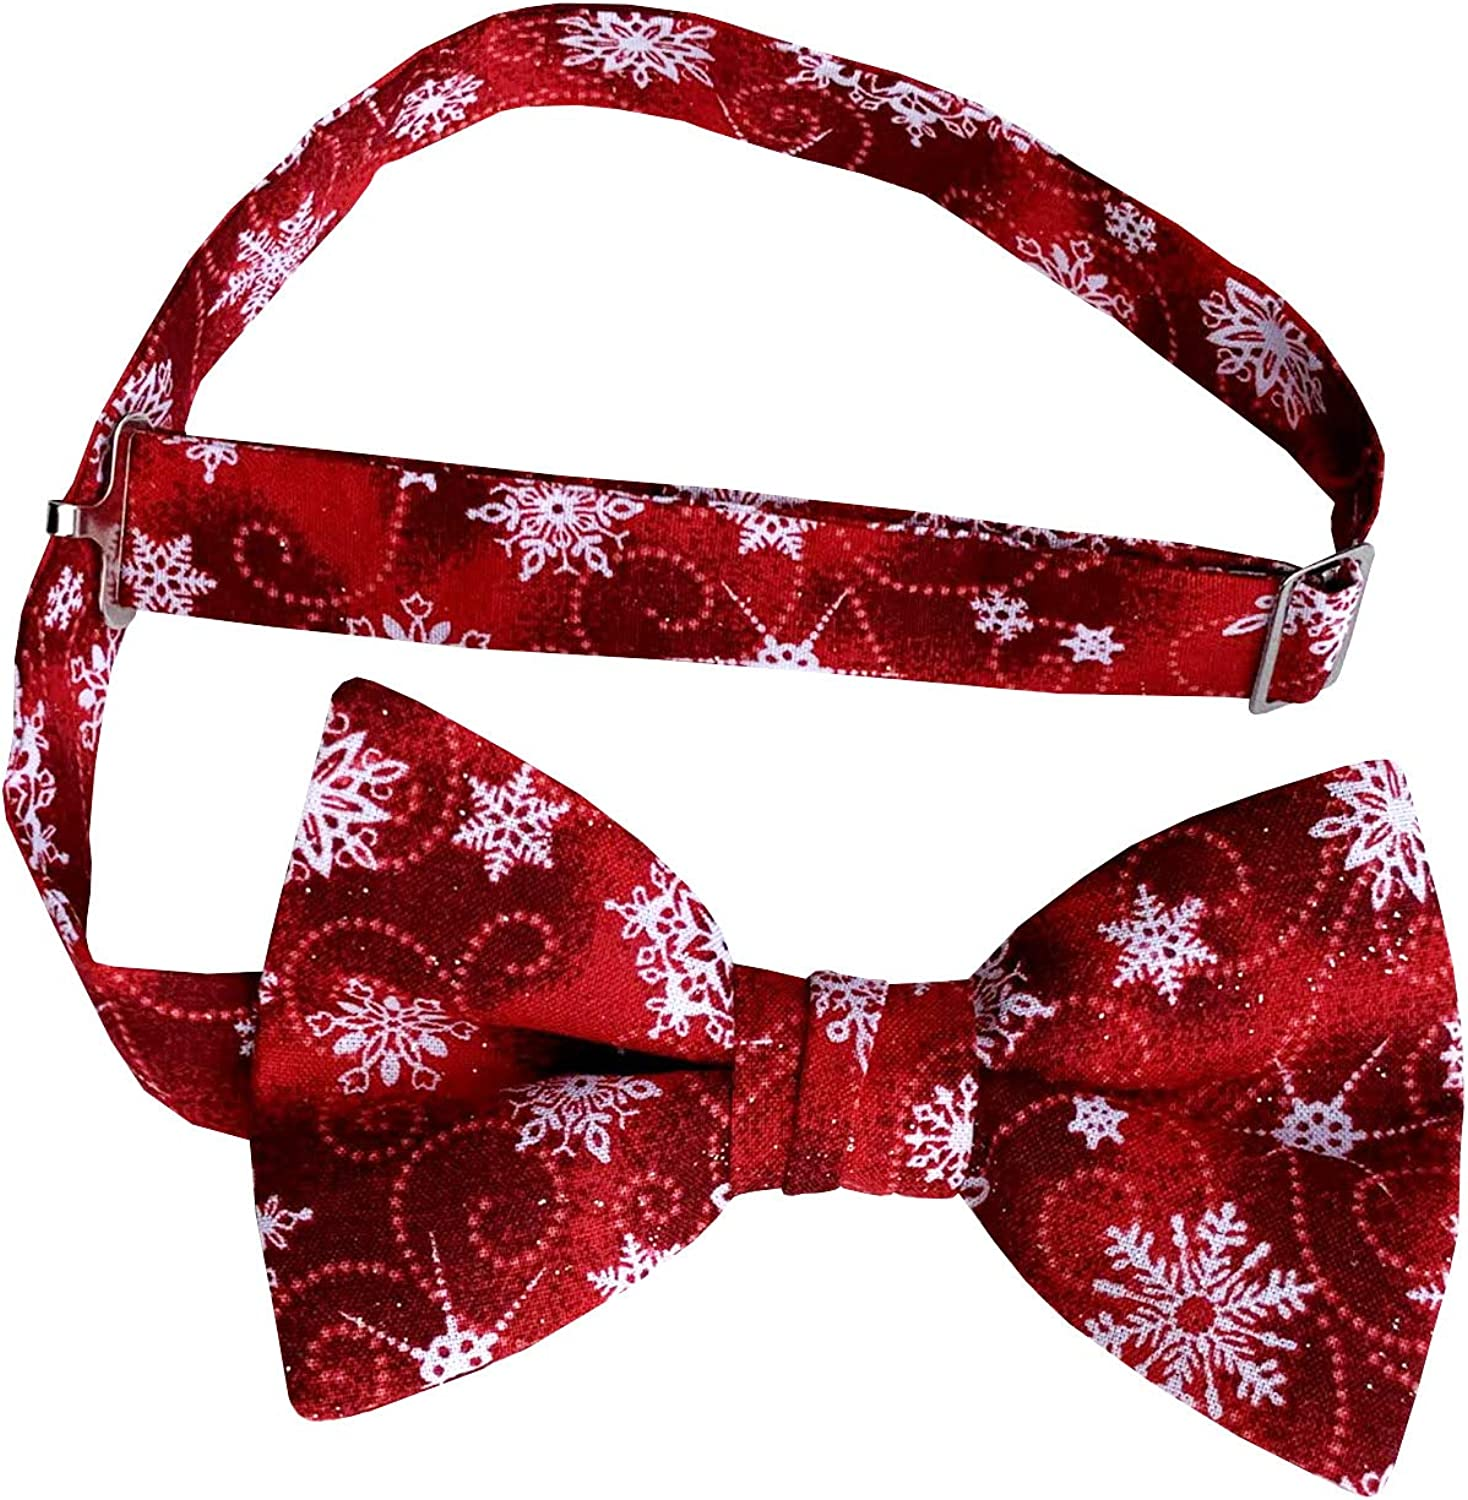 Holiday Bow Ties Mens Pre-tied Bow Tie Red with White Snowflakes Iridescent